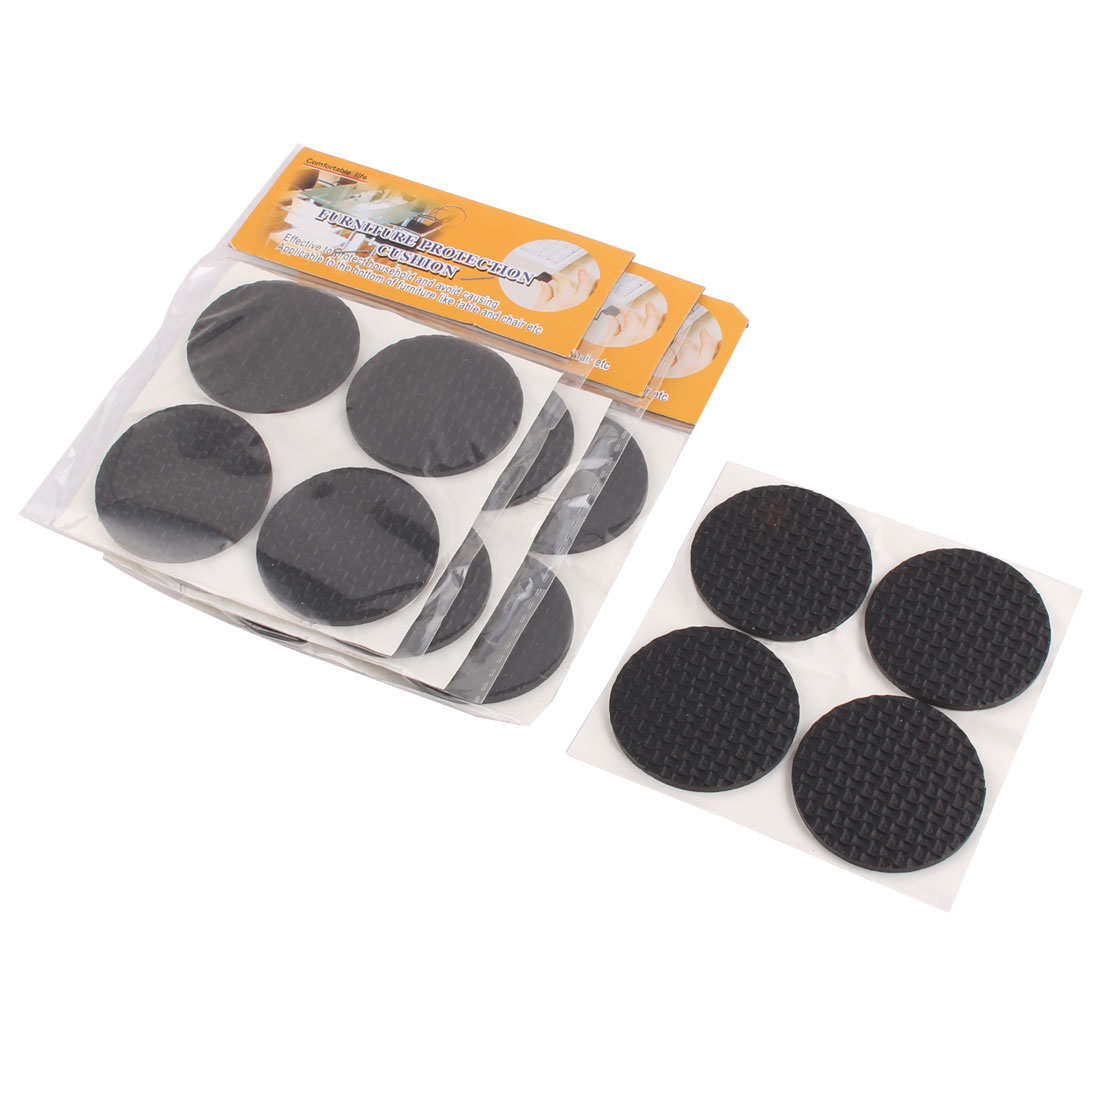 Home Rubber Round Table Chair Furniture Protector Cushion Pads Mat 42mm Dia 16pcs